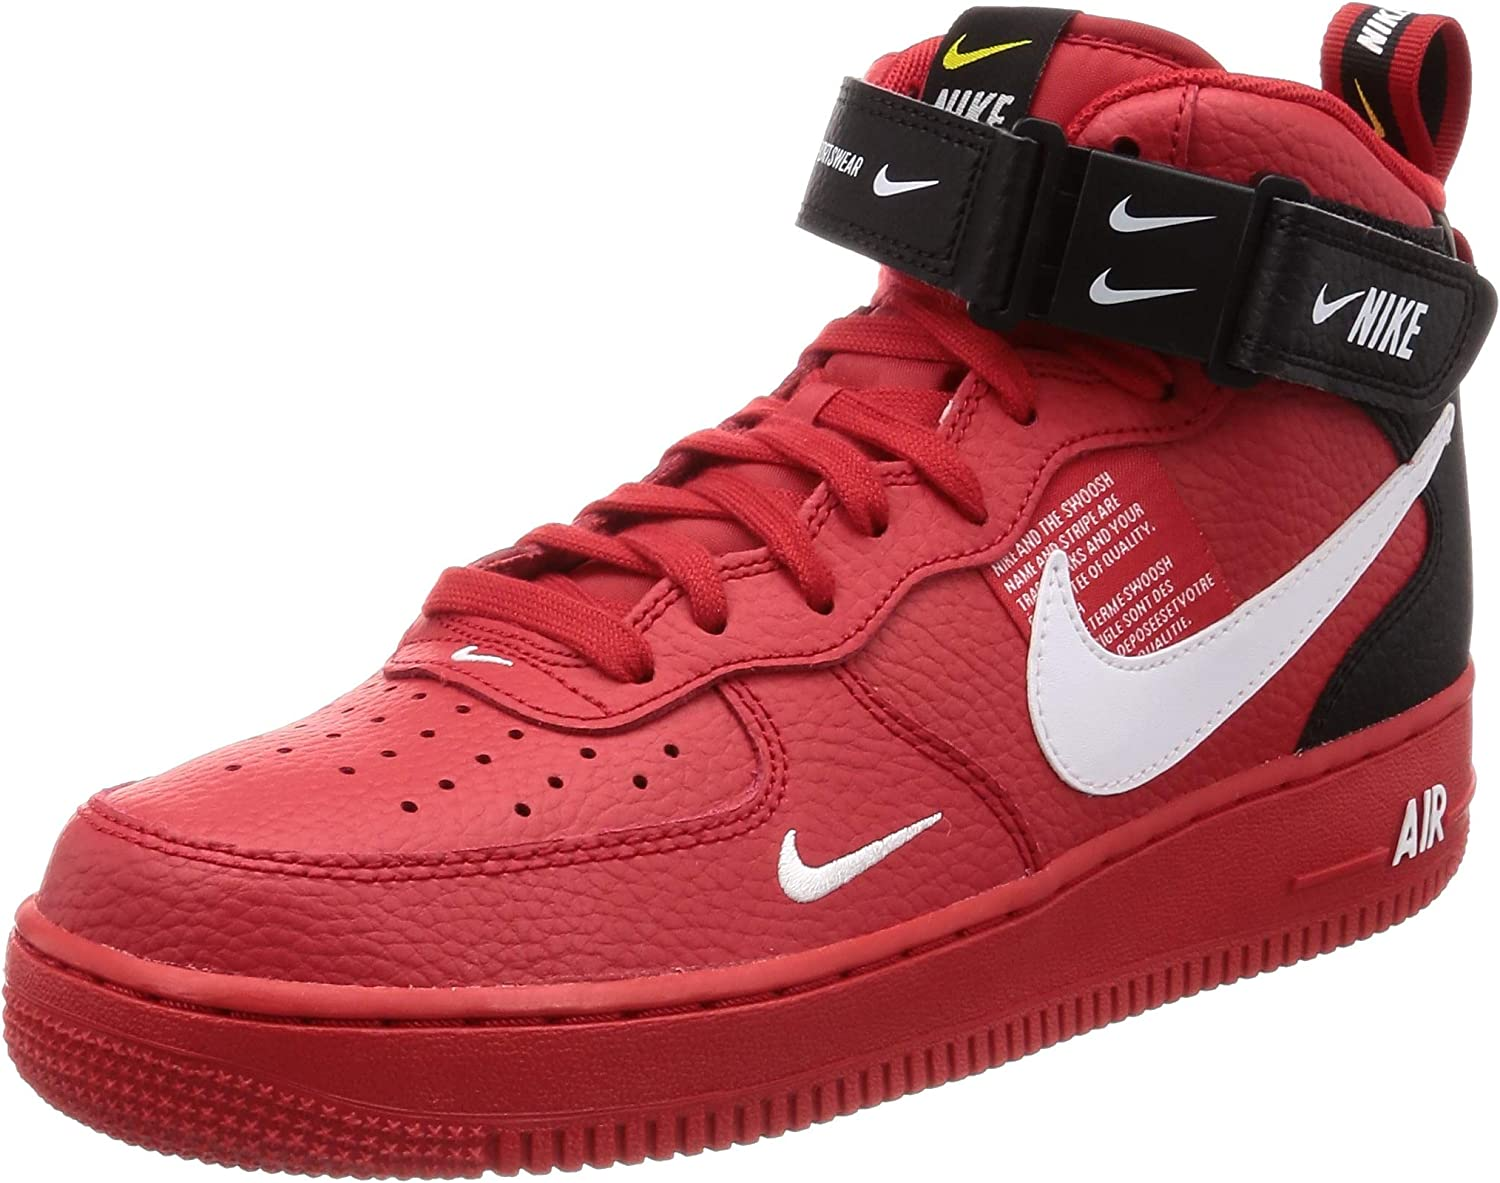 Nike AIR Force 1 MID '07 LV8-804609-605